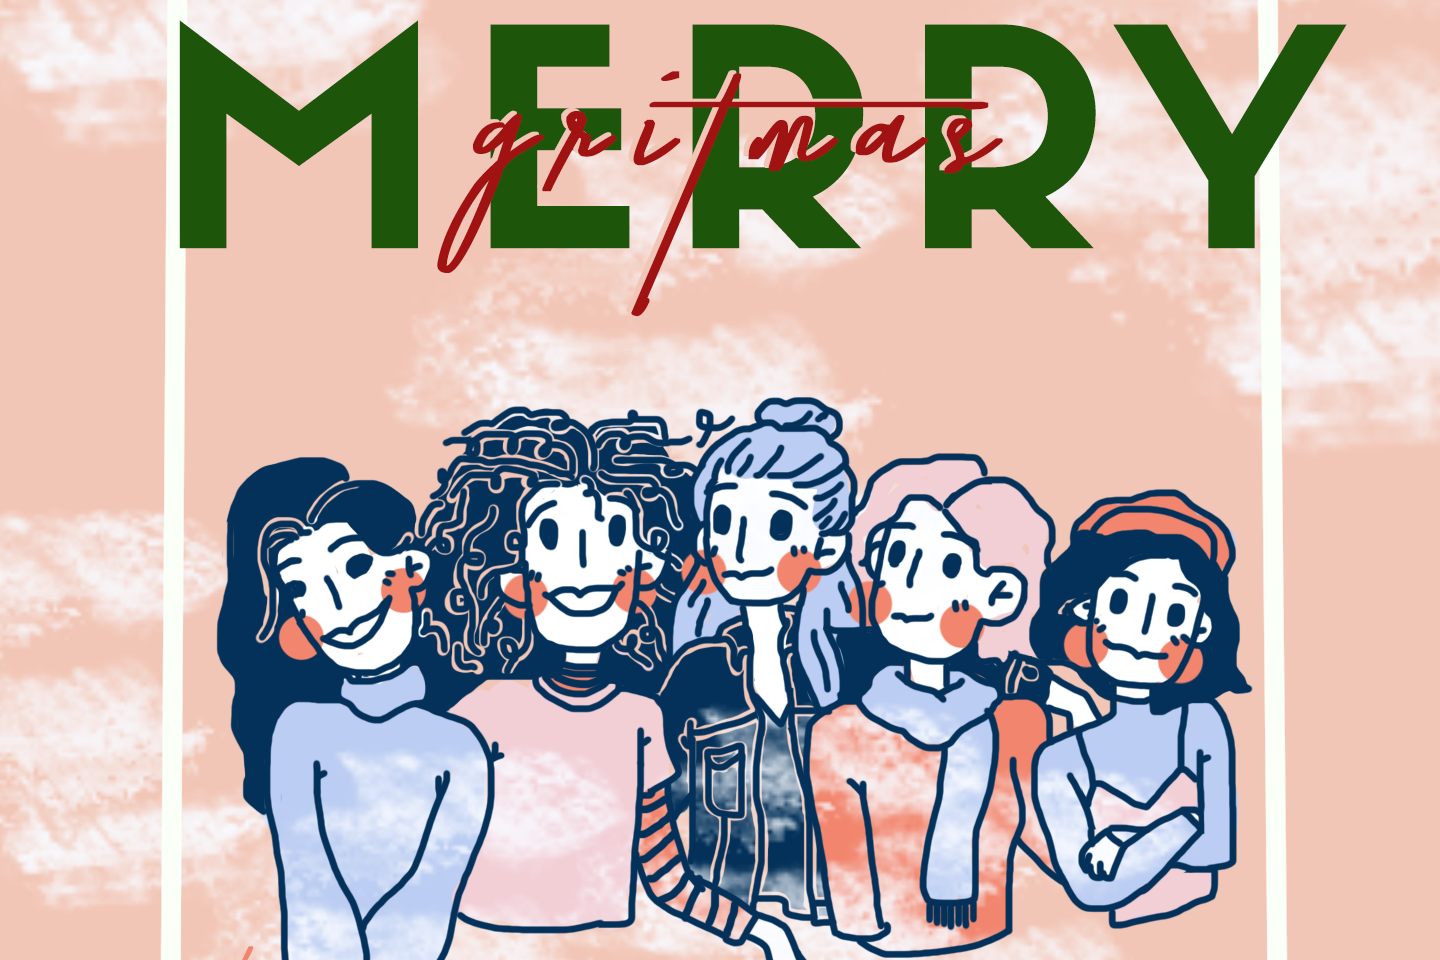 Merry Gritmas Illustration by Thecla Li